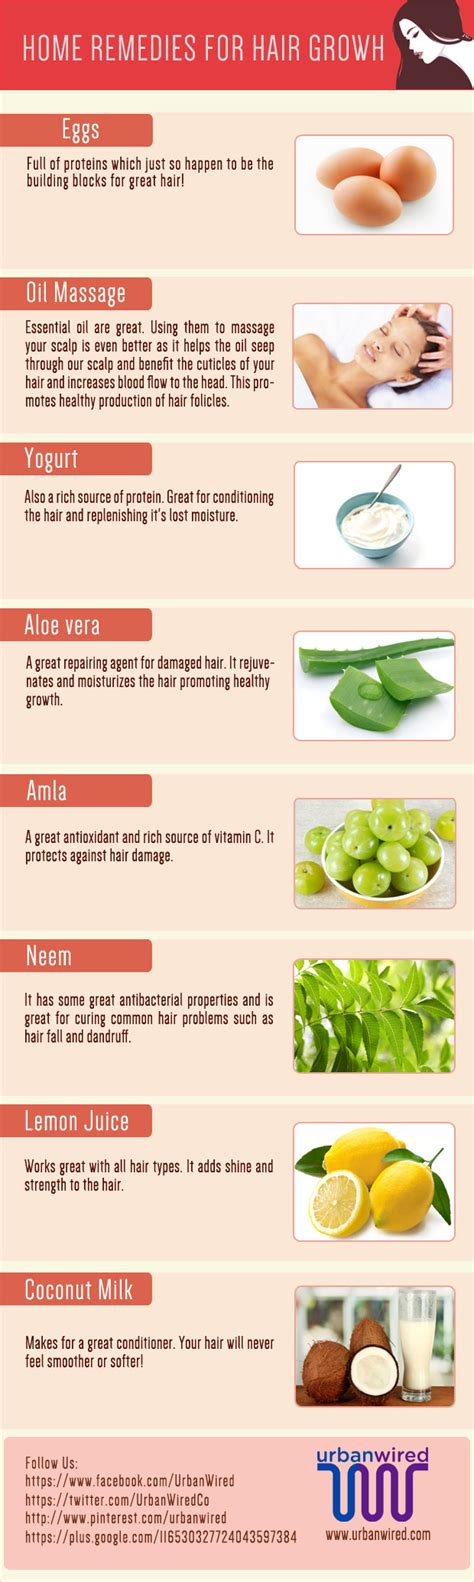 8 effective home remedies for hair growth strength and glow